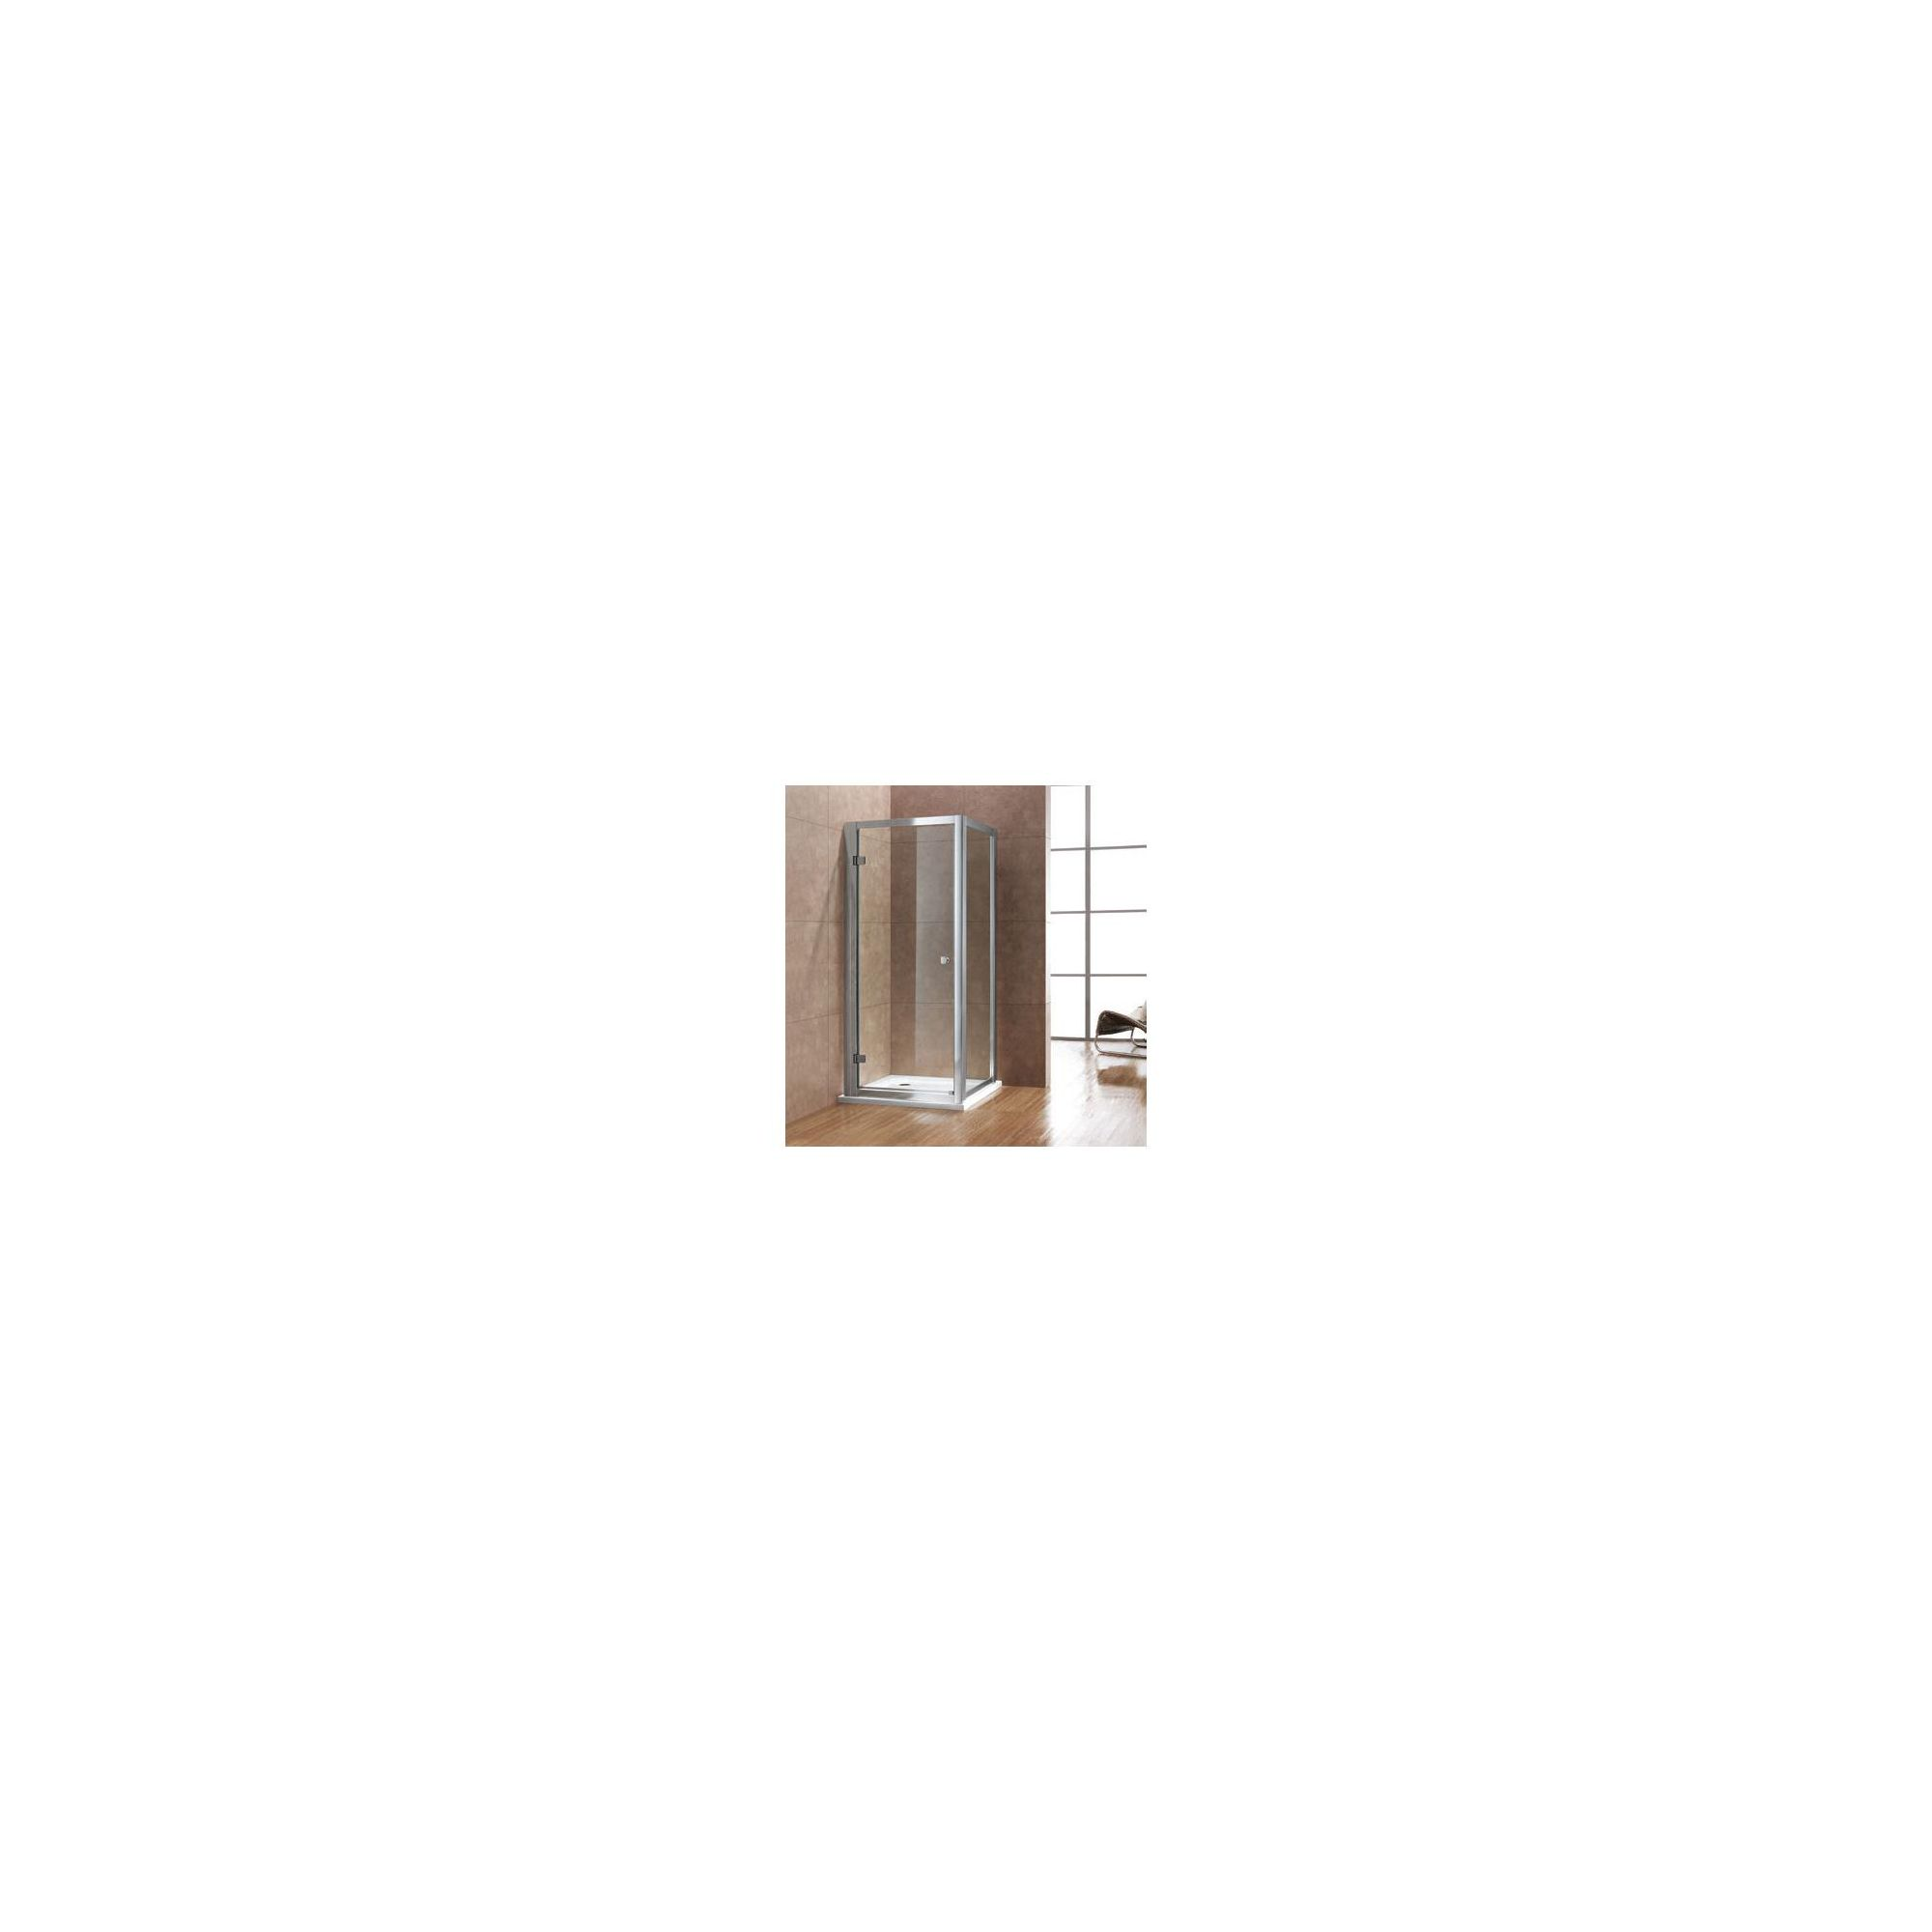 Duchy Premium Hinged Door Shower Enclosure, 1200mm x 800mm, 8mm Glass, Low Profile Tray at Tesco Direct